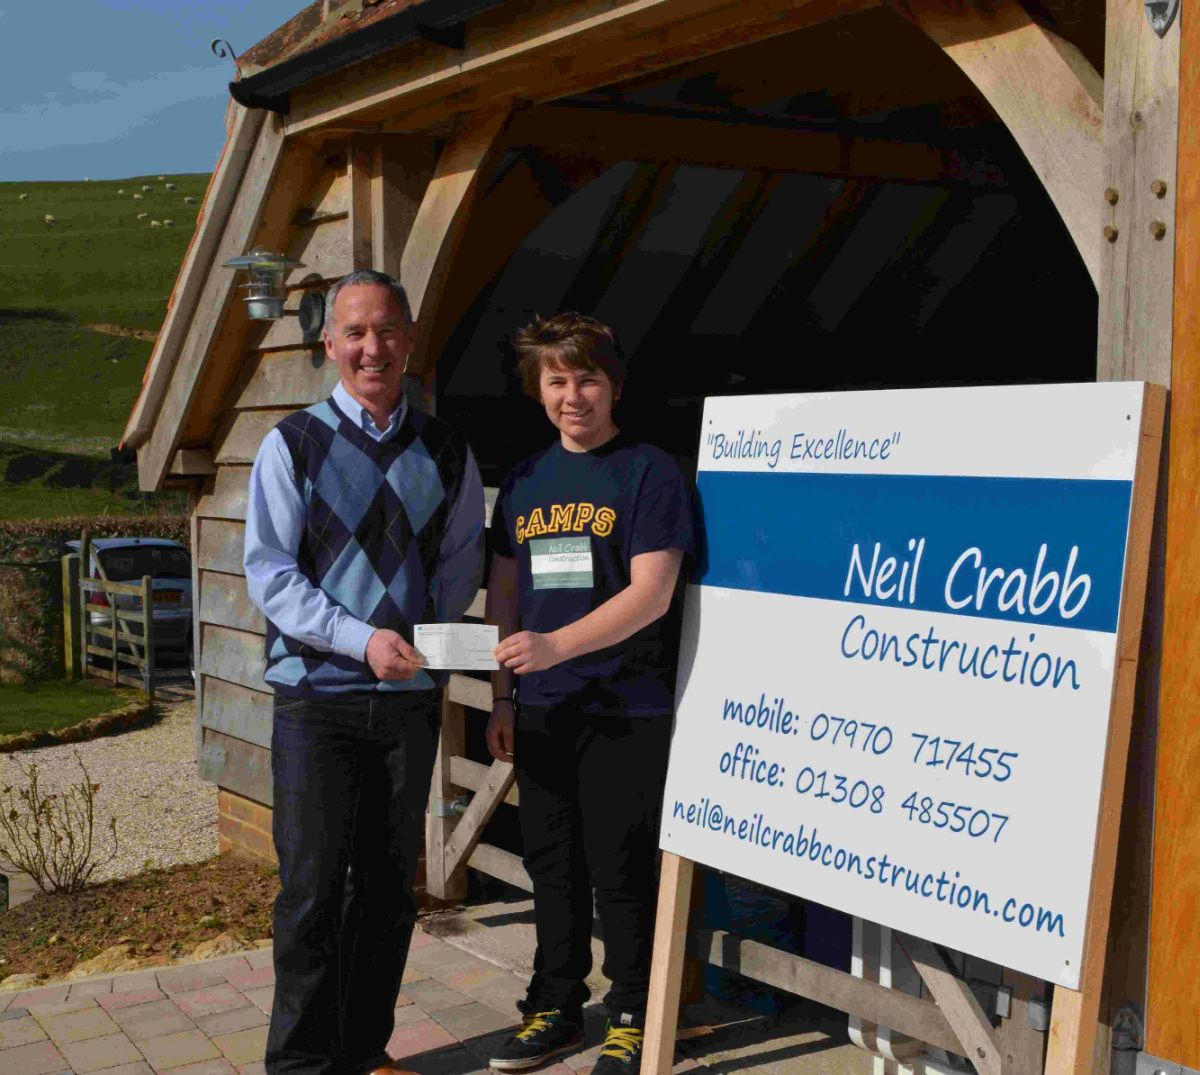 Joseph Neil Crabb, 15, receives a £200 boost from his uncle Neil Crabb